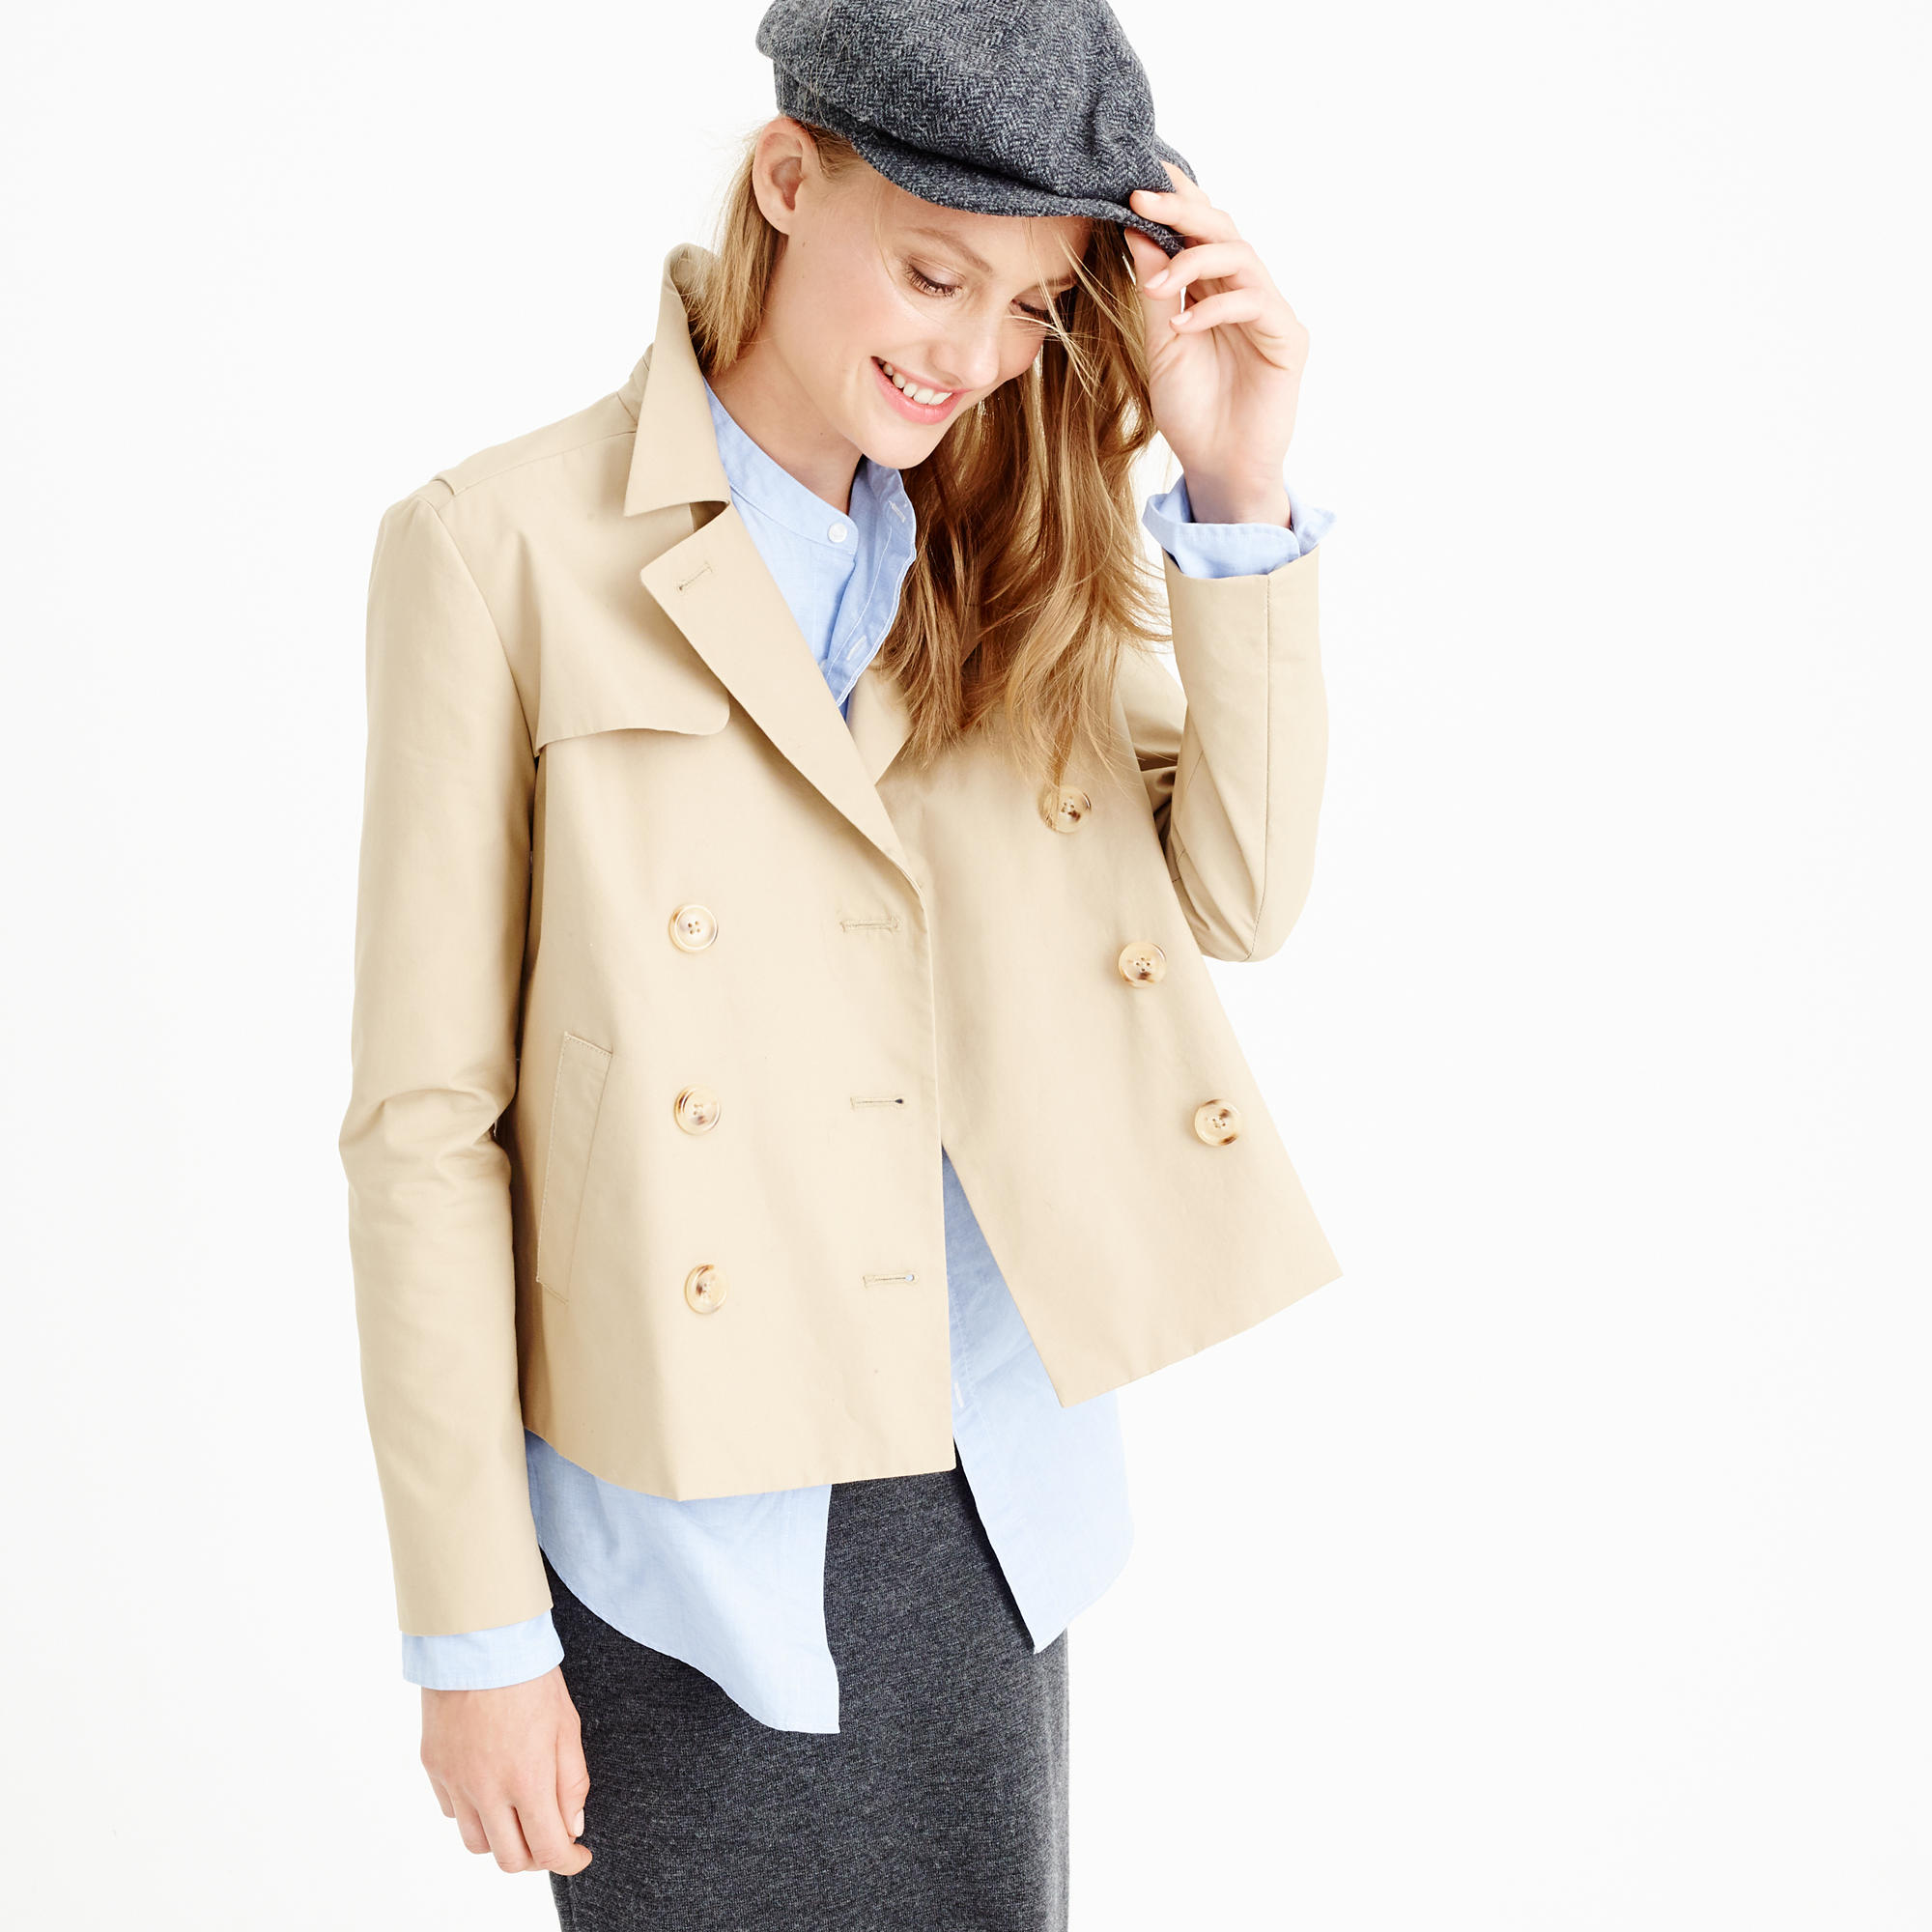 J. CREW JAPANESE POPLIN SWING TRENCH COAT »» ON SALE NOW FROM $89